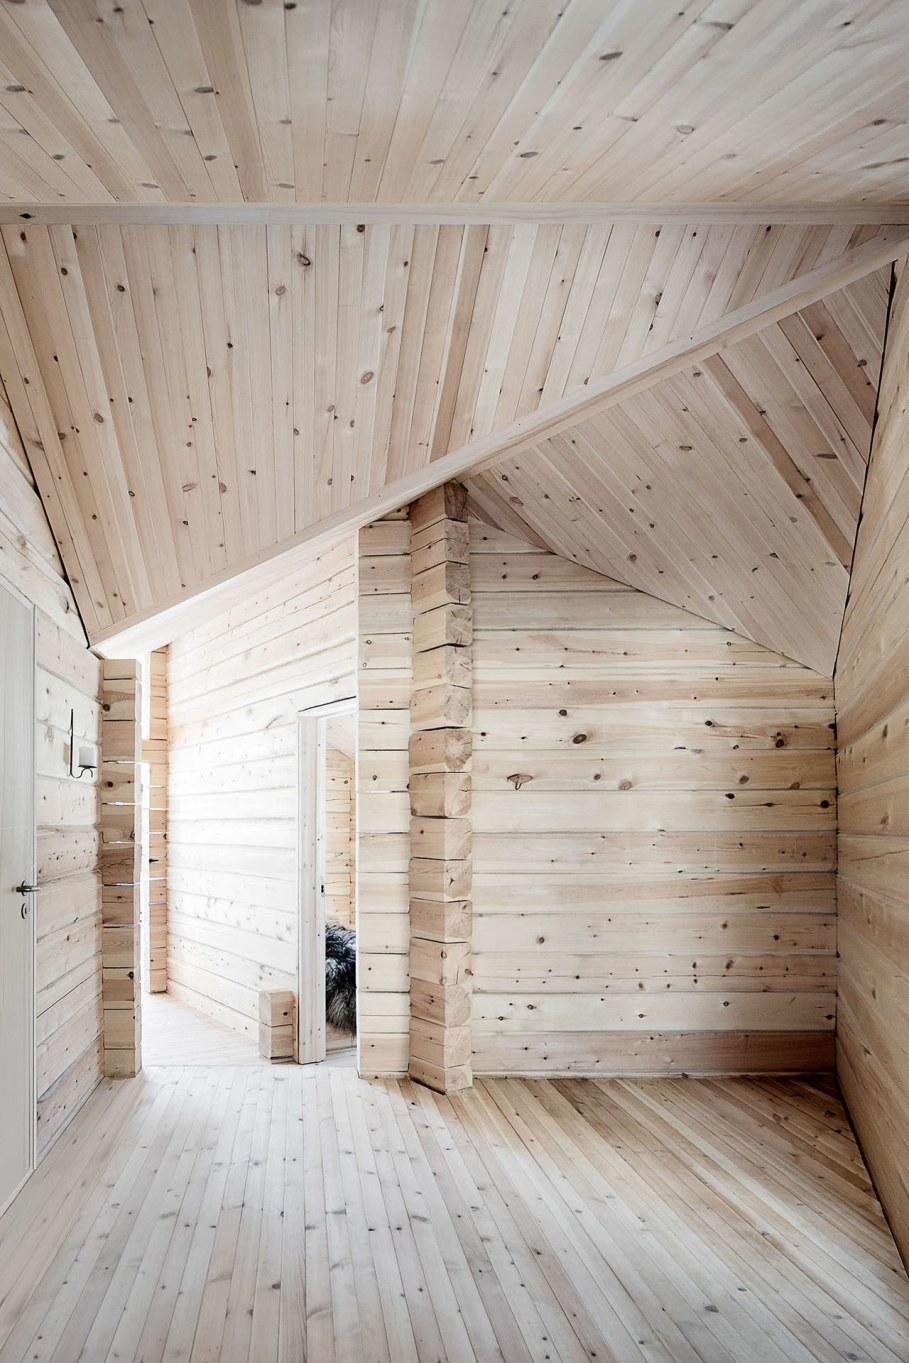 The wooden house in Norway - interior